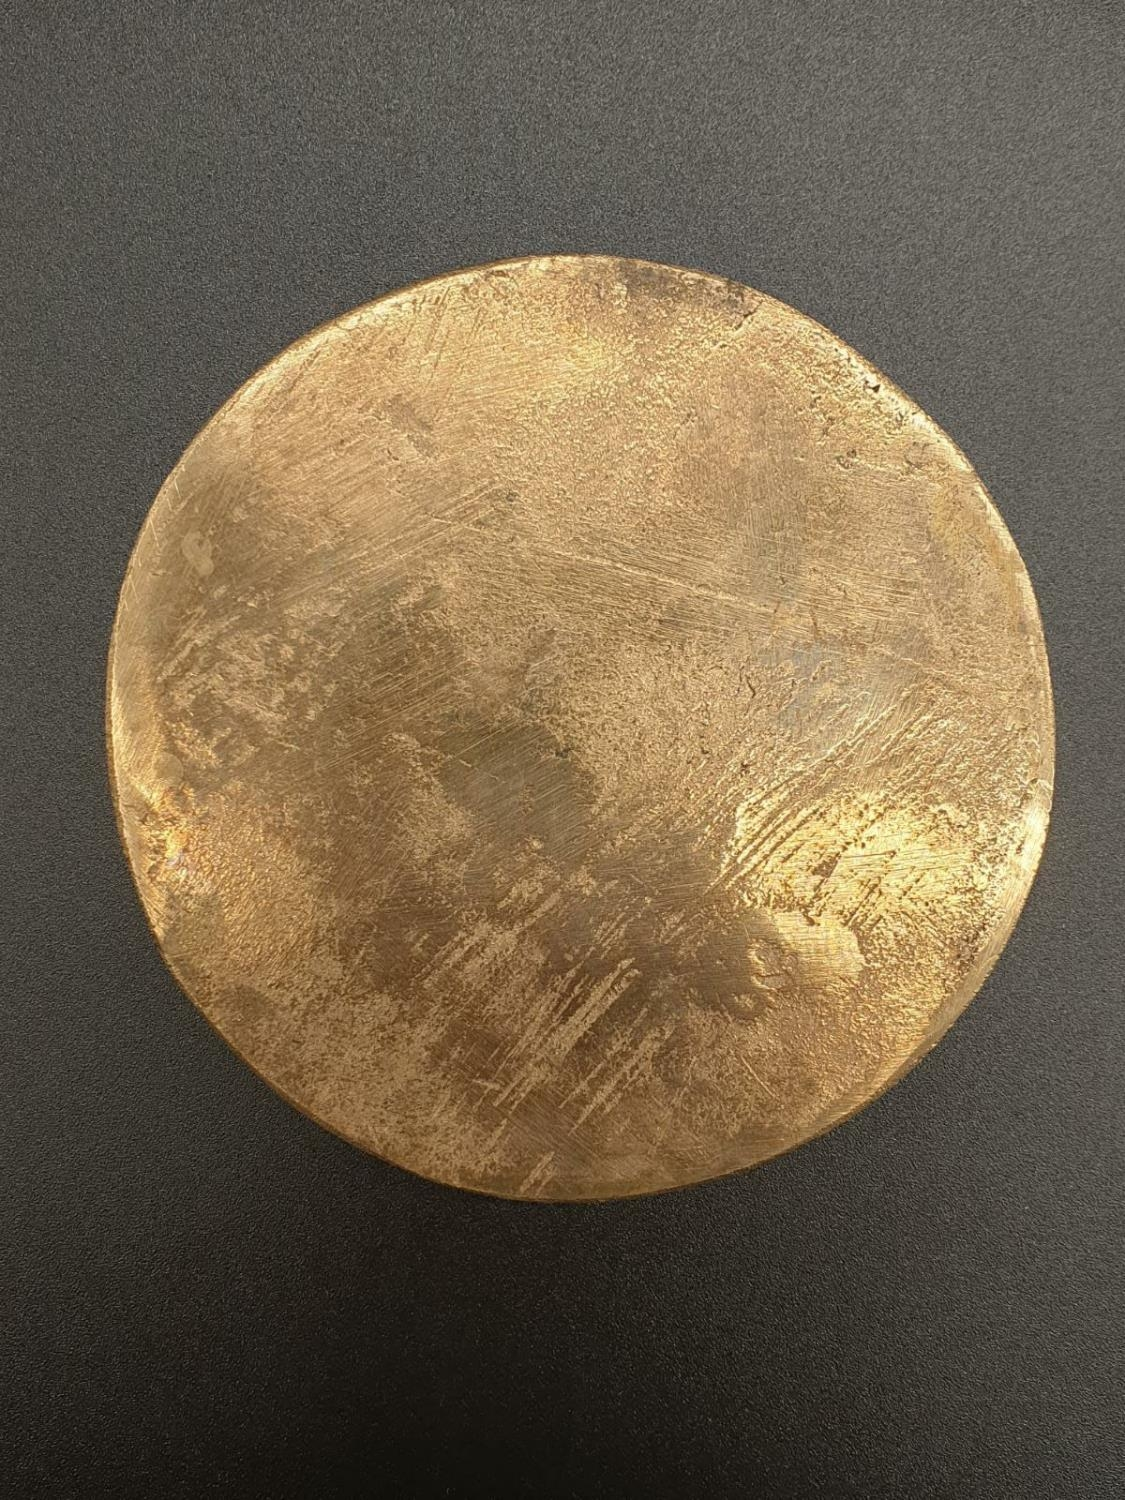 A HEAVY GILDED LARGE ONE SIDED COIN WITH TOP SIDE SEEMINGLY HAMMERED. 285.6gms 8cms diameter - Image 4 of 5